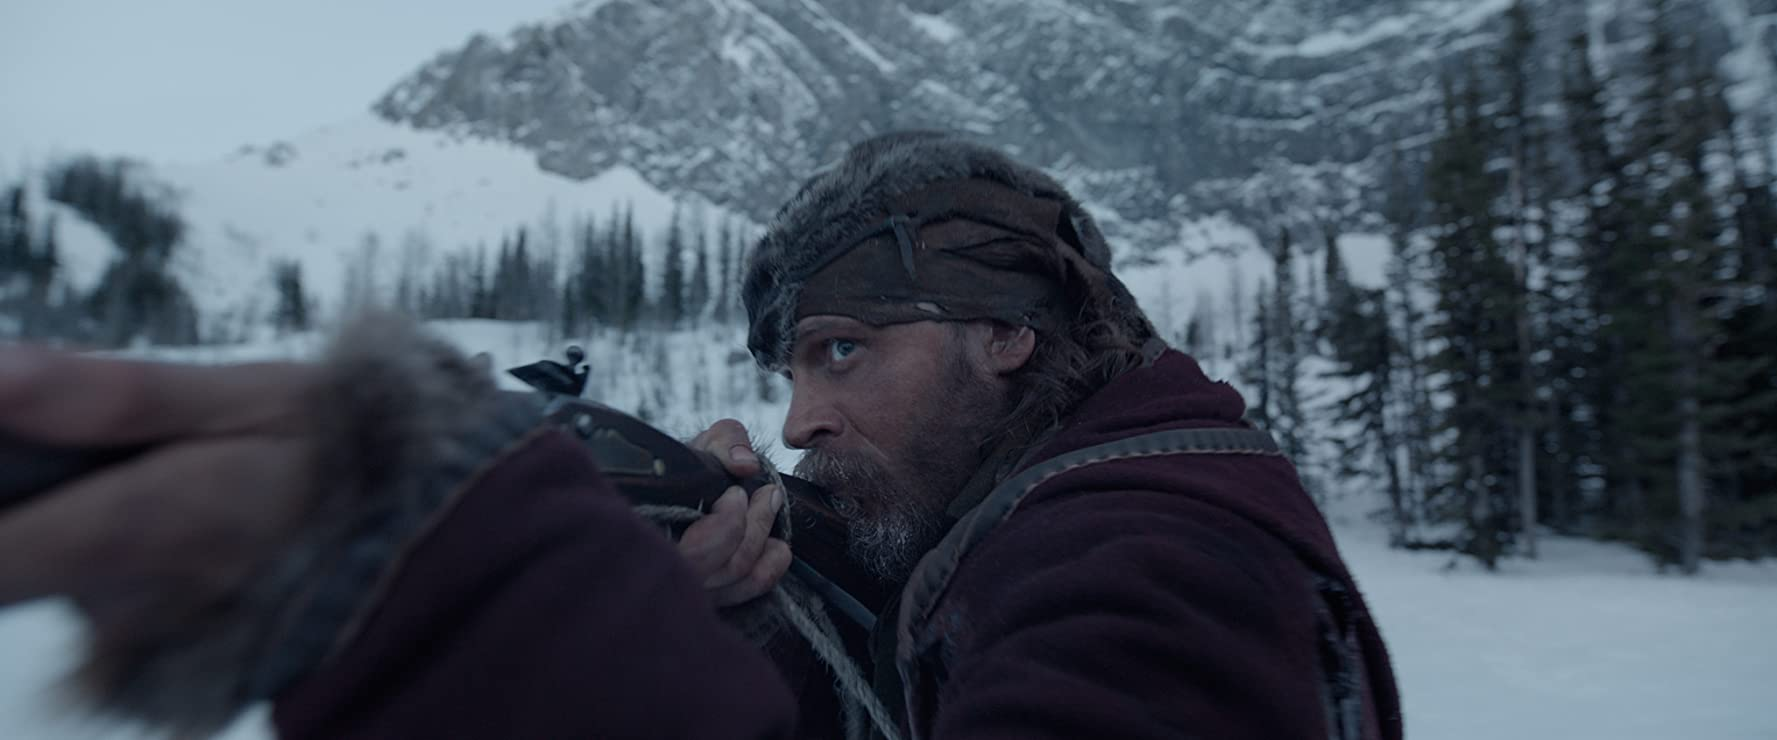 Tom Hardy in The Revenant (2015)